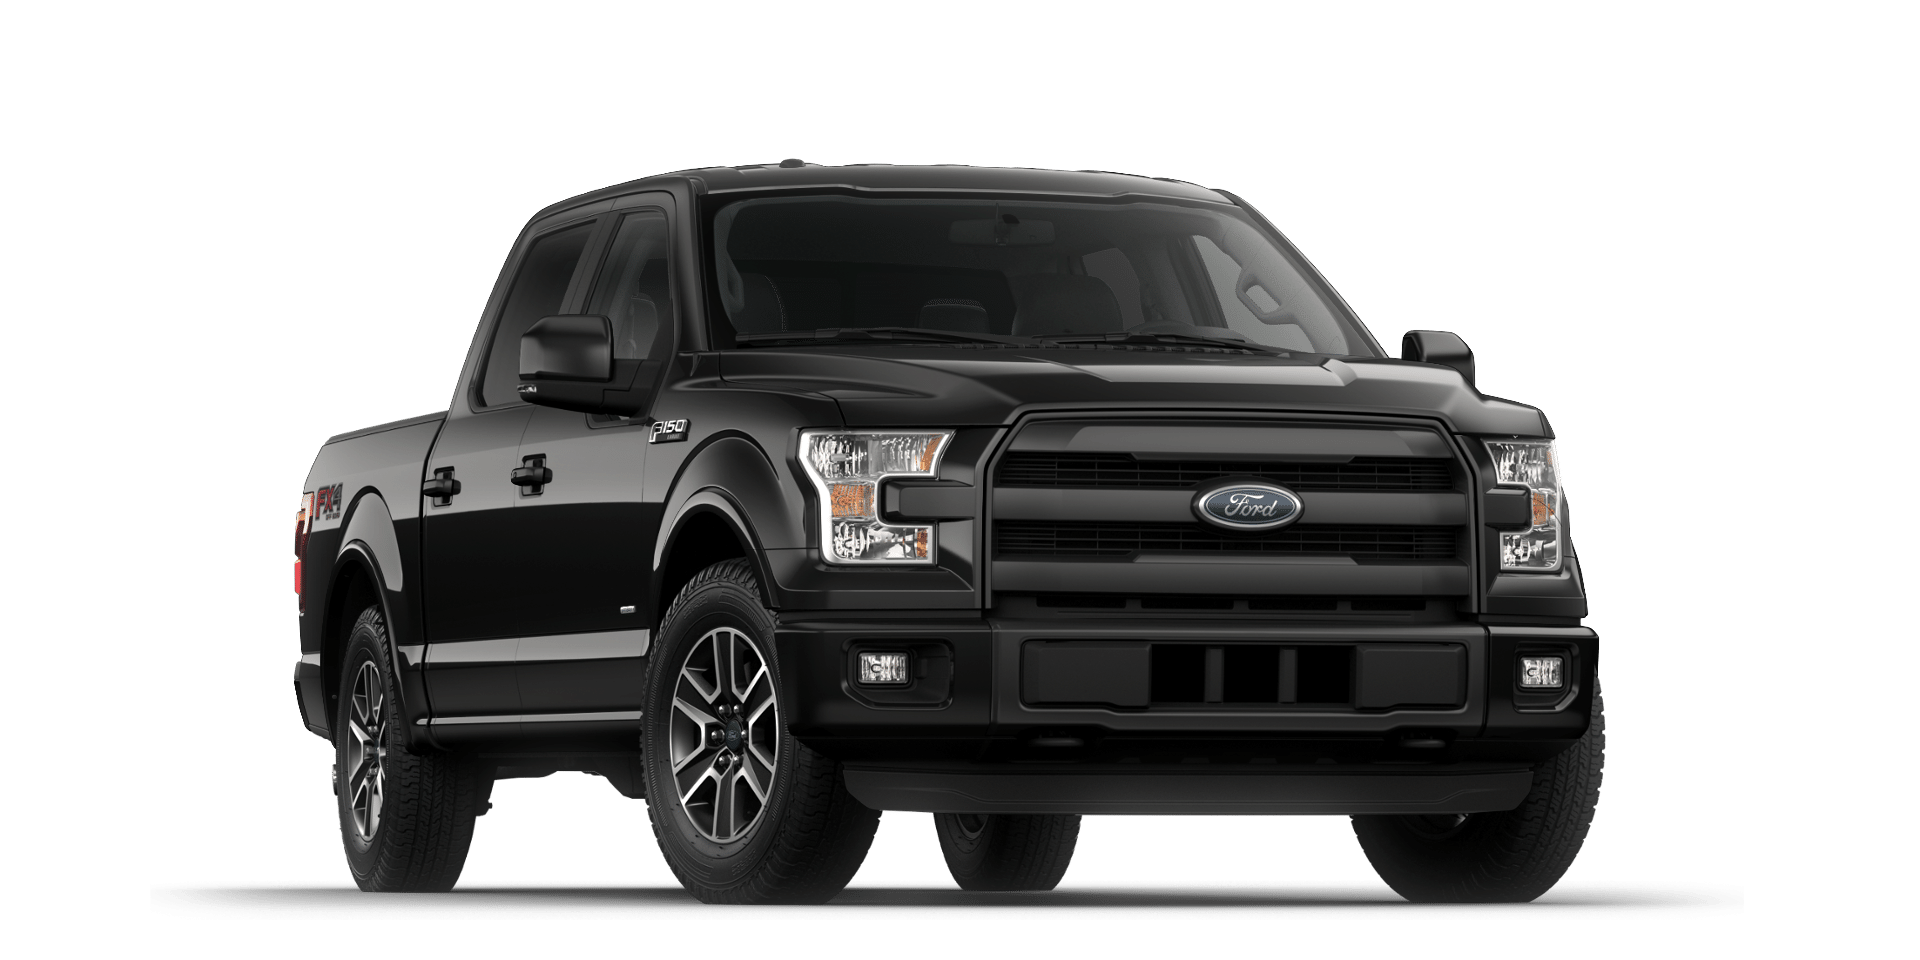 2016 Ford F 150 Build Price Ford F150 Hybrid Car Ford